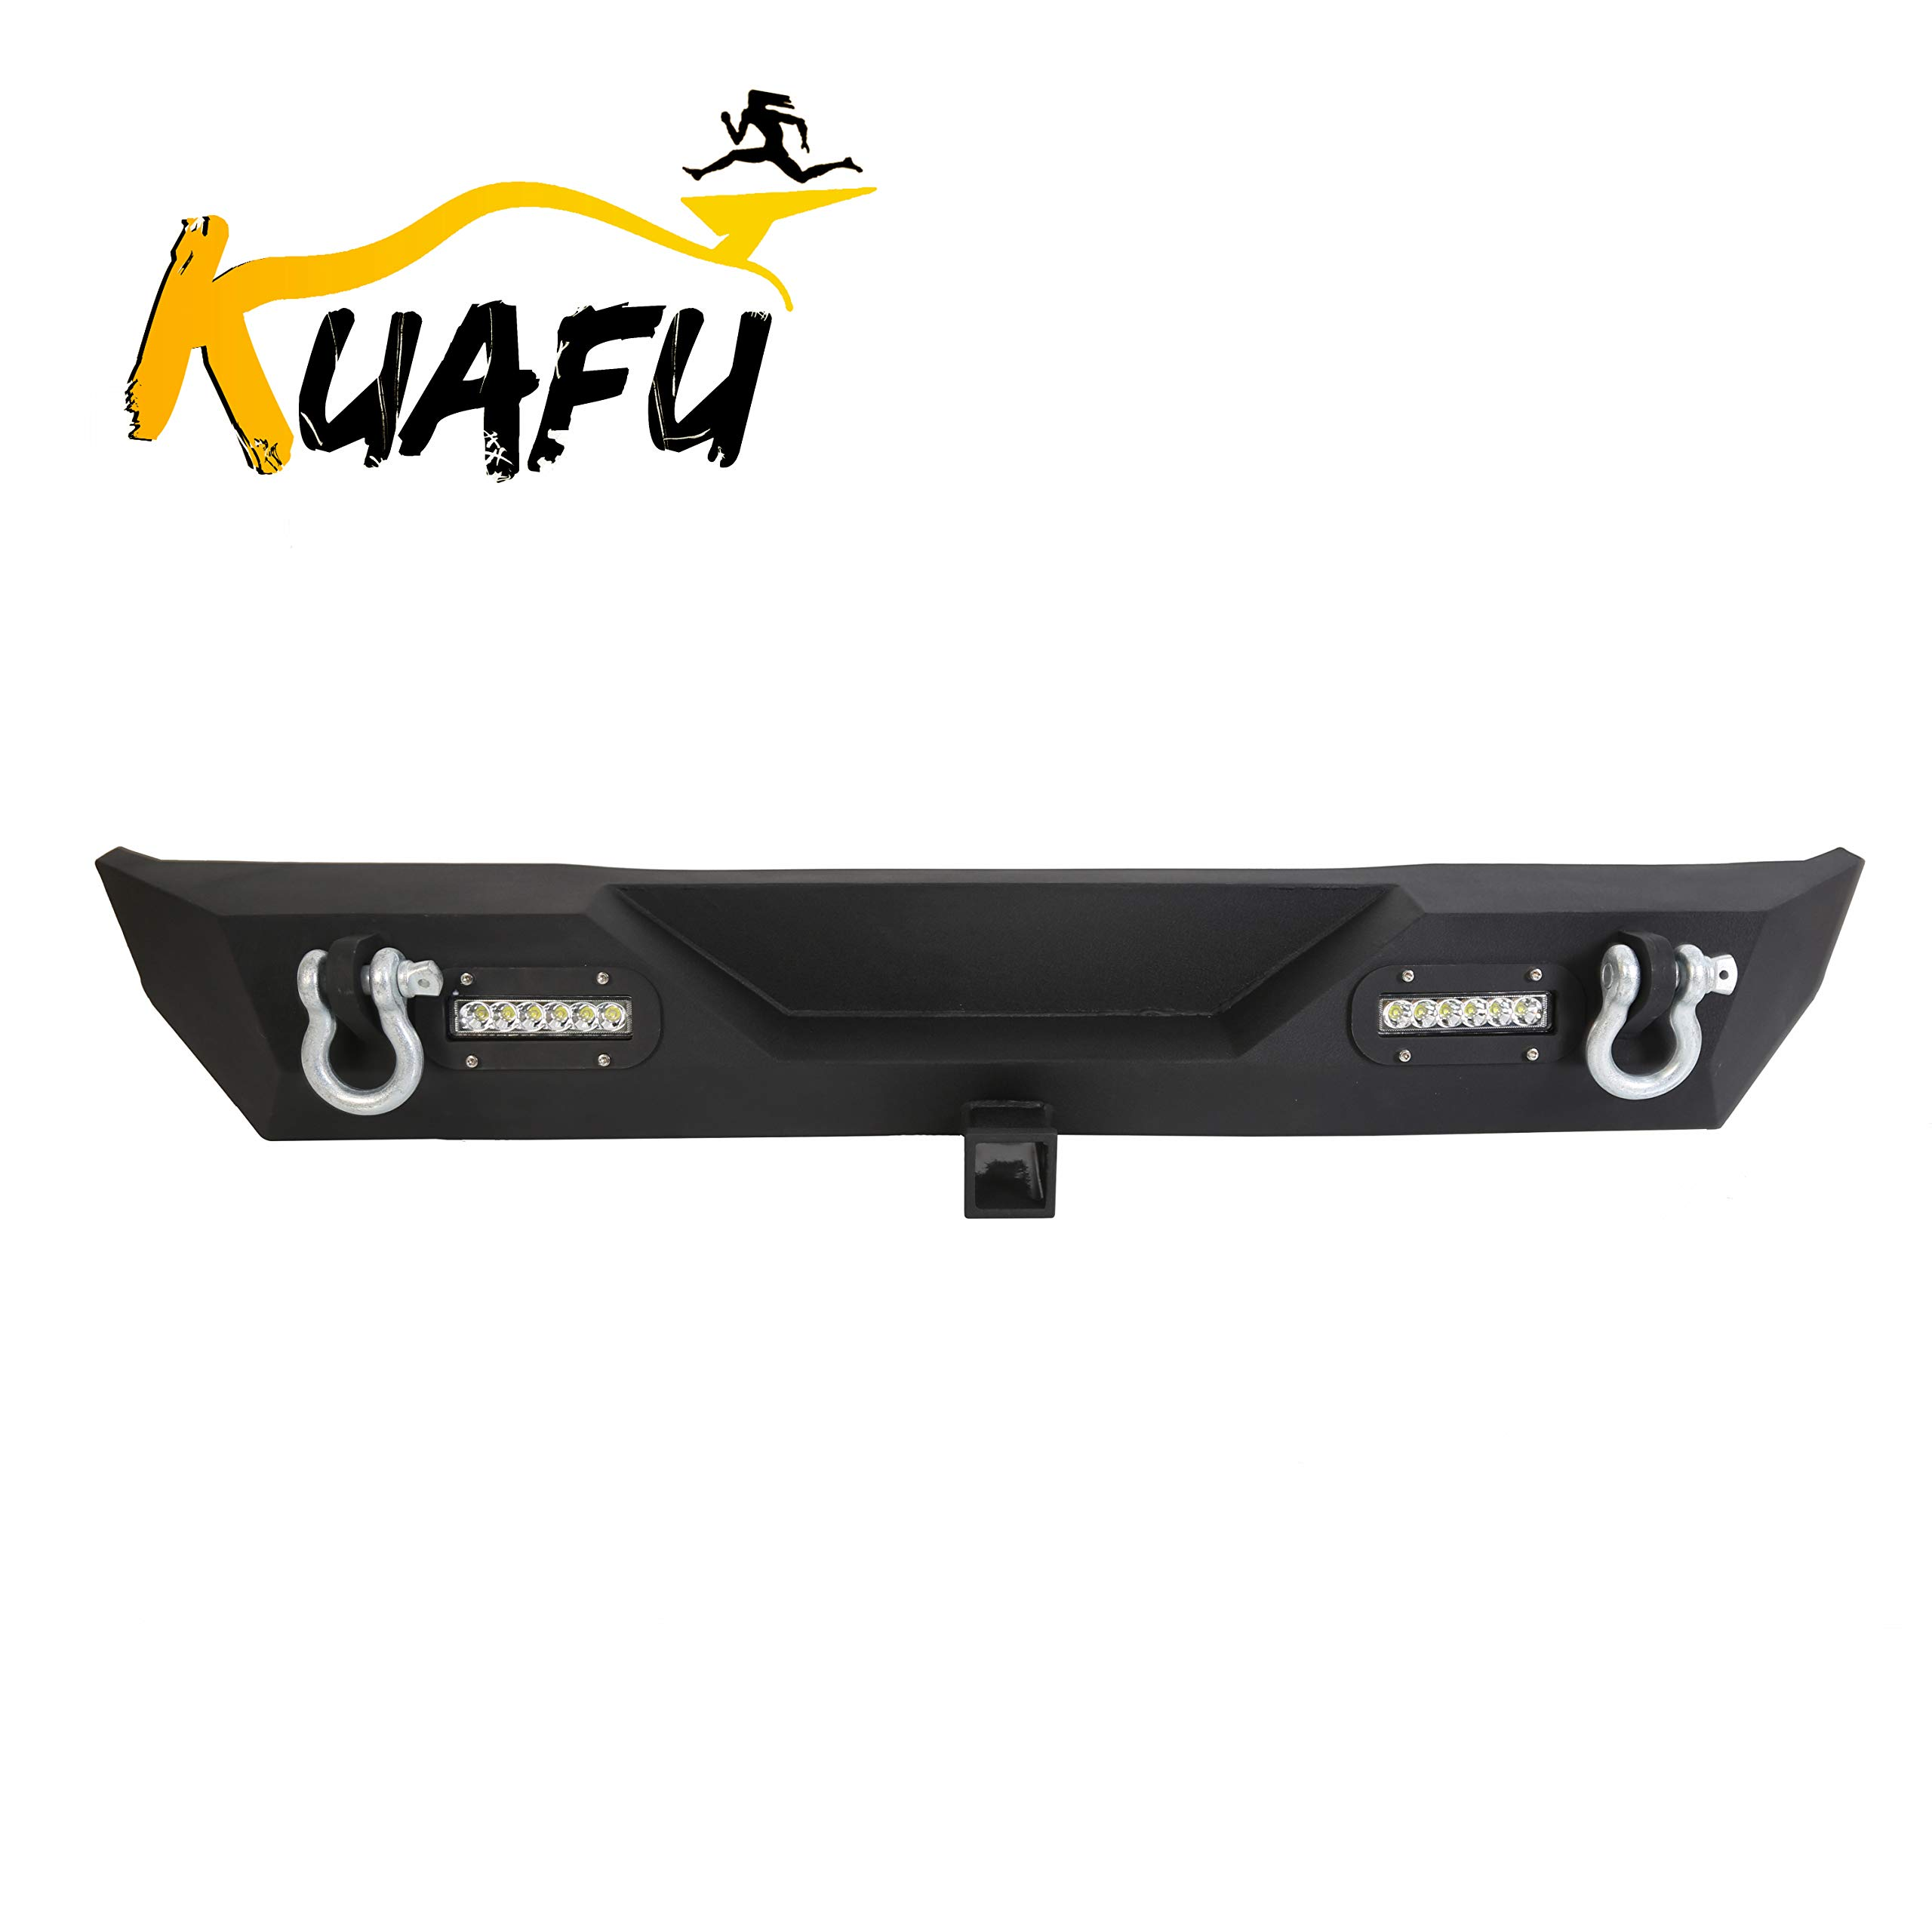 """Rear Bumper For 87-06 Jeep Wrangler TJ YJ Unlimited With LED Lights 2"""" Hitch Receiver D-rings Off-Road Style Black…"""